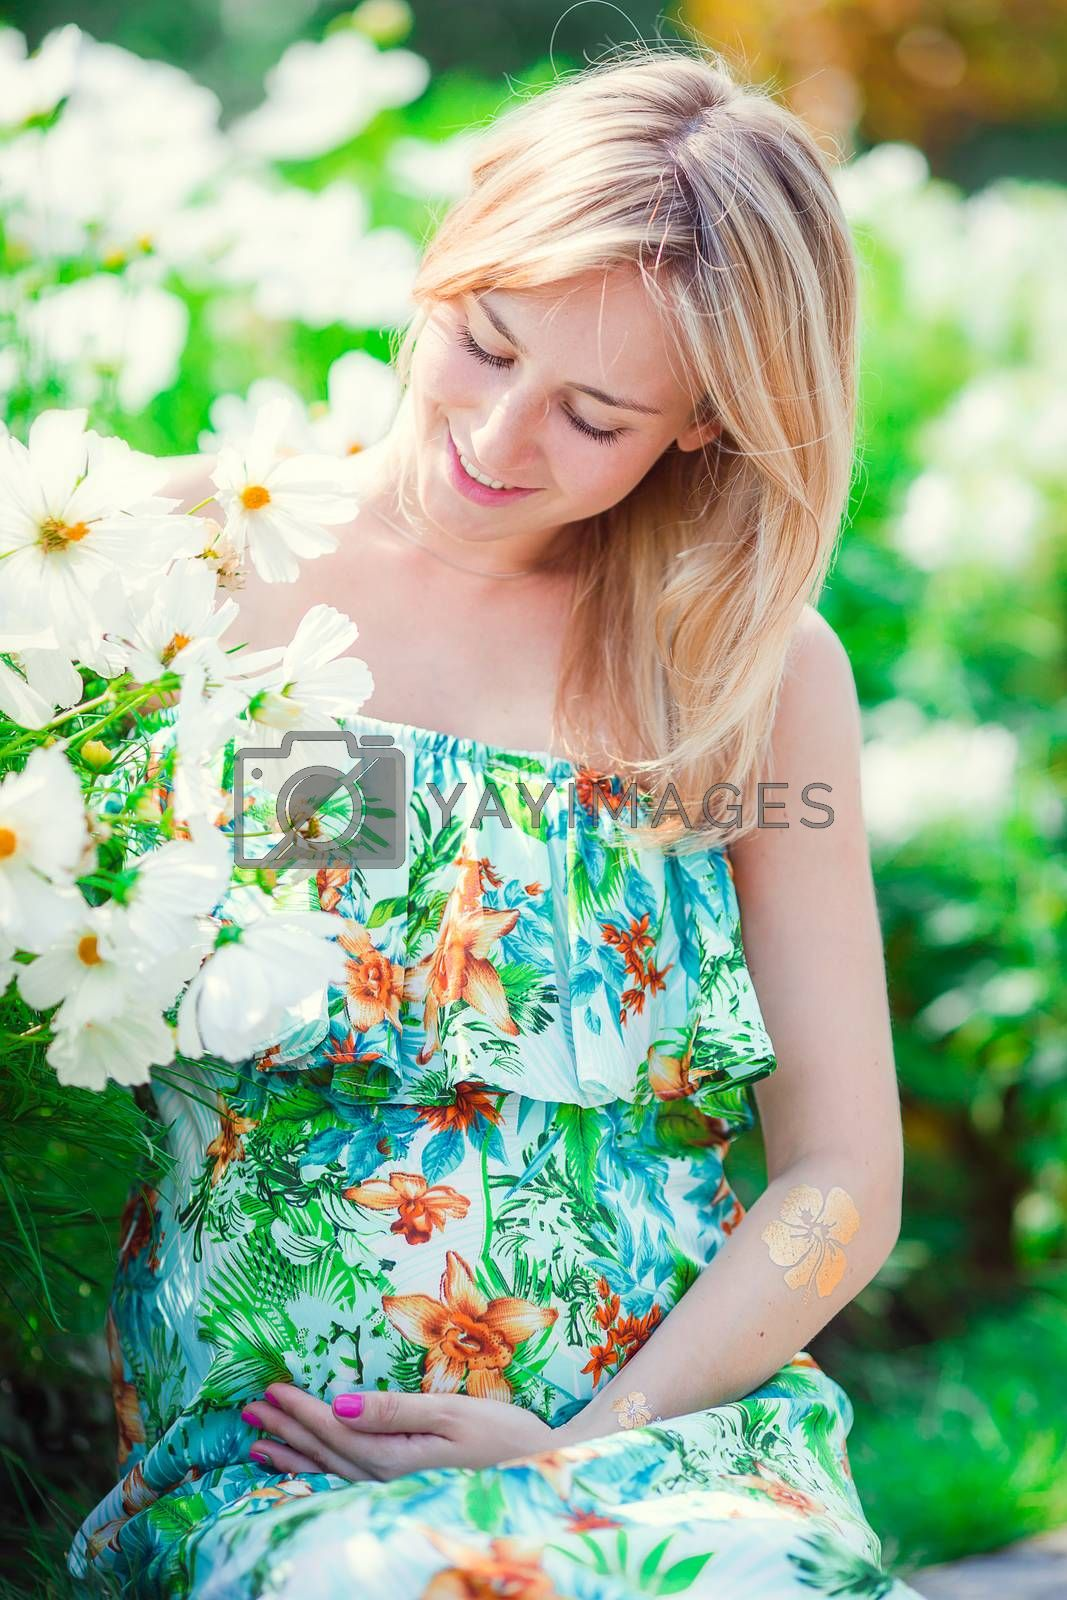 Lovely tender pregnant woman relaxing resting on the grass in the park on a warm day. Pregnancy concept